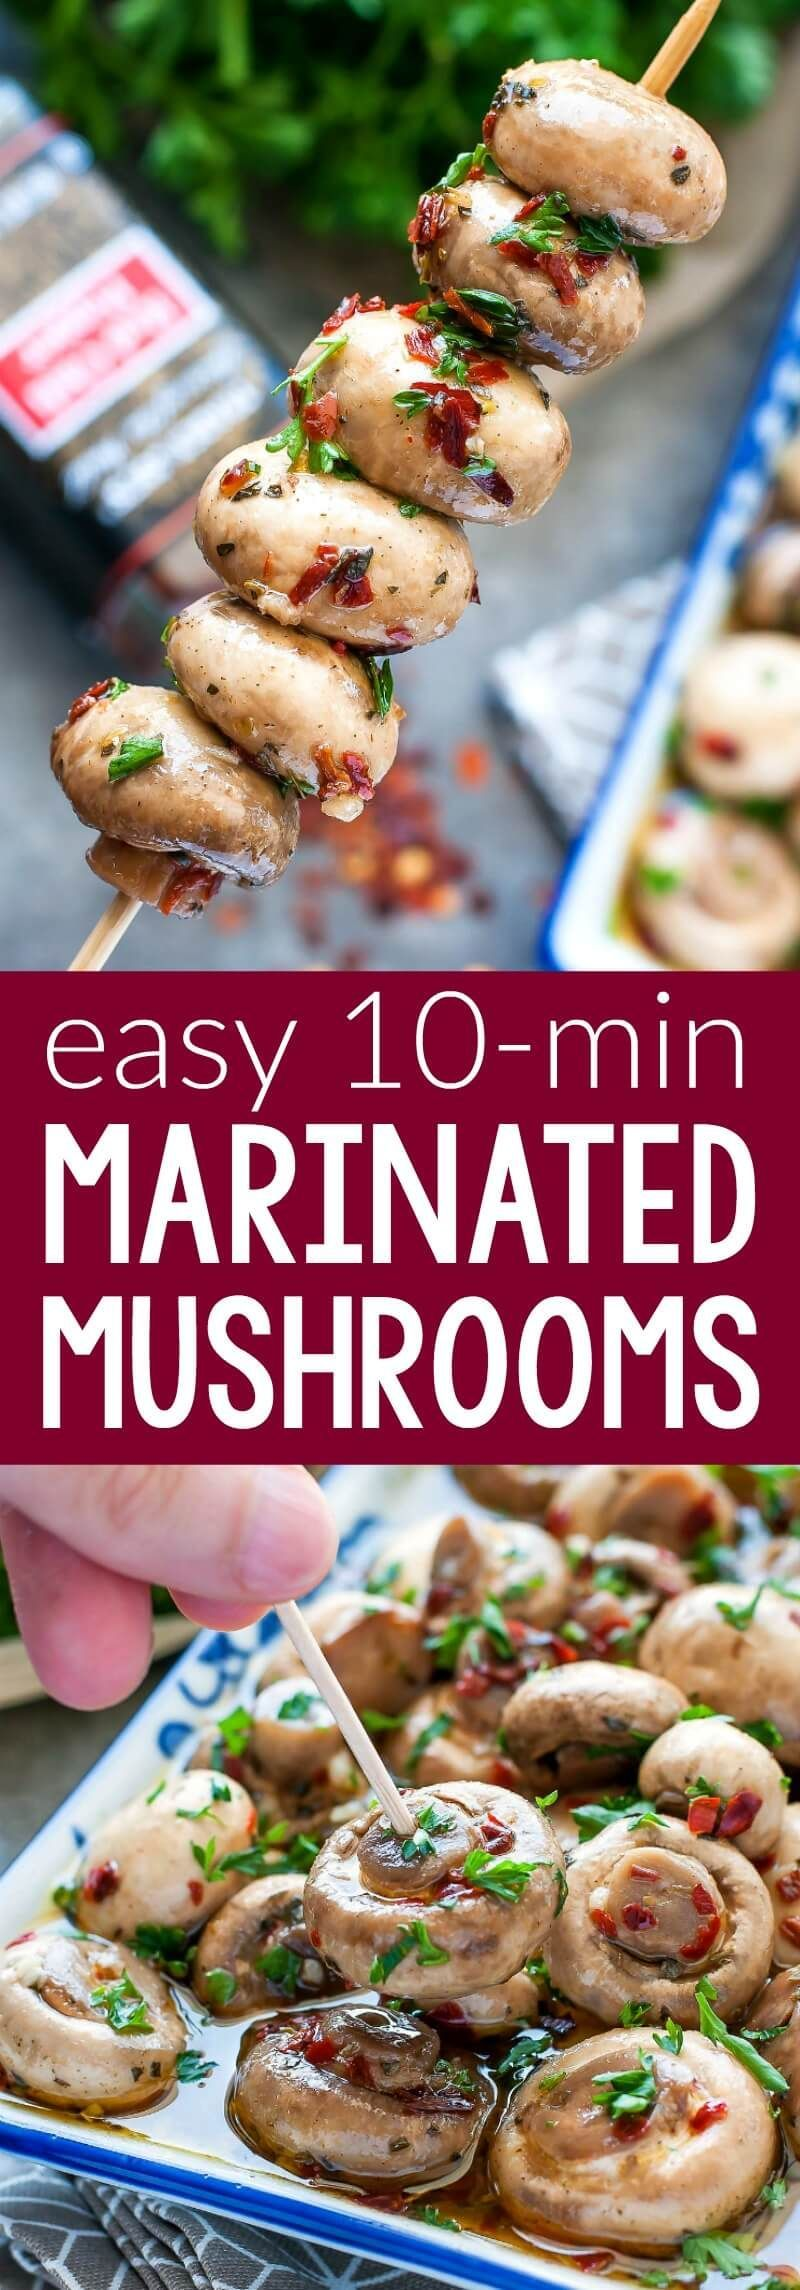 Skip the jar and whip up these easy breezy 10 Minute Marinated Mushrooms at home! #mushrooms #marinade #marinated #pickled #vegetarian #vegan #glutenfree #keto #snack #appetizer #lowcarb